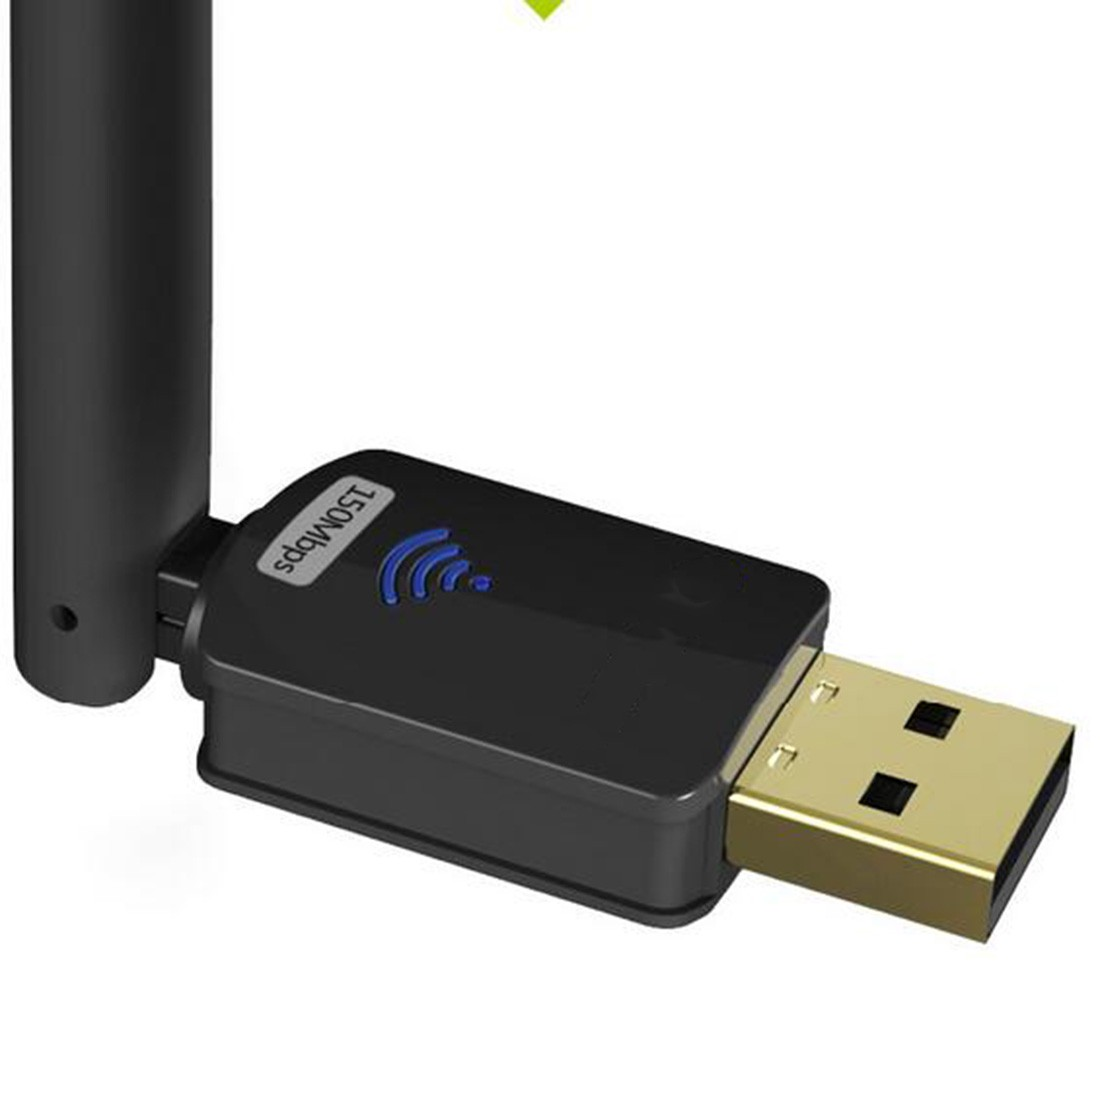 Etmakit Hot Selling Portable 150M MTK7601 Wireless USB Wifi Adapter Dongle Network Card With 6dBi Antenna in Network Cards from Computer Office